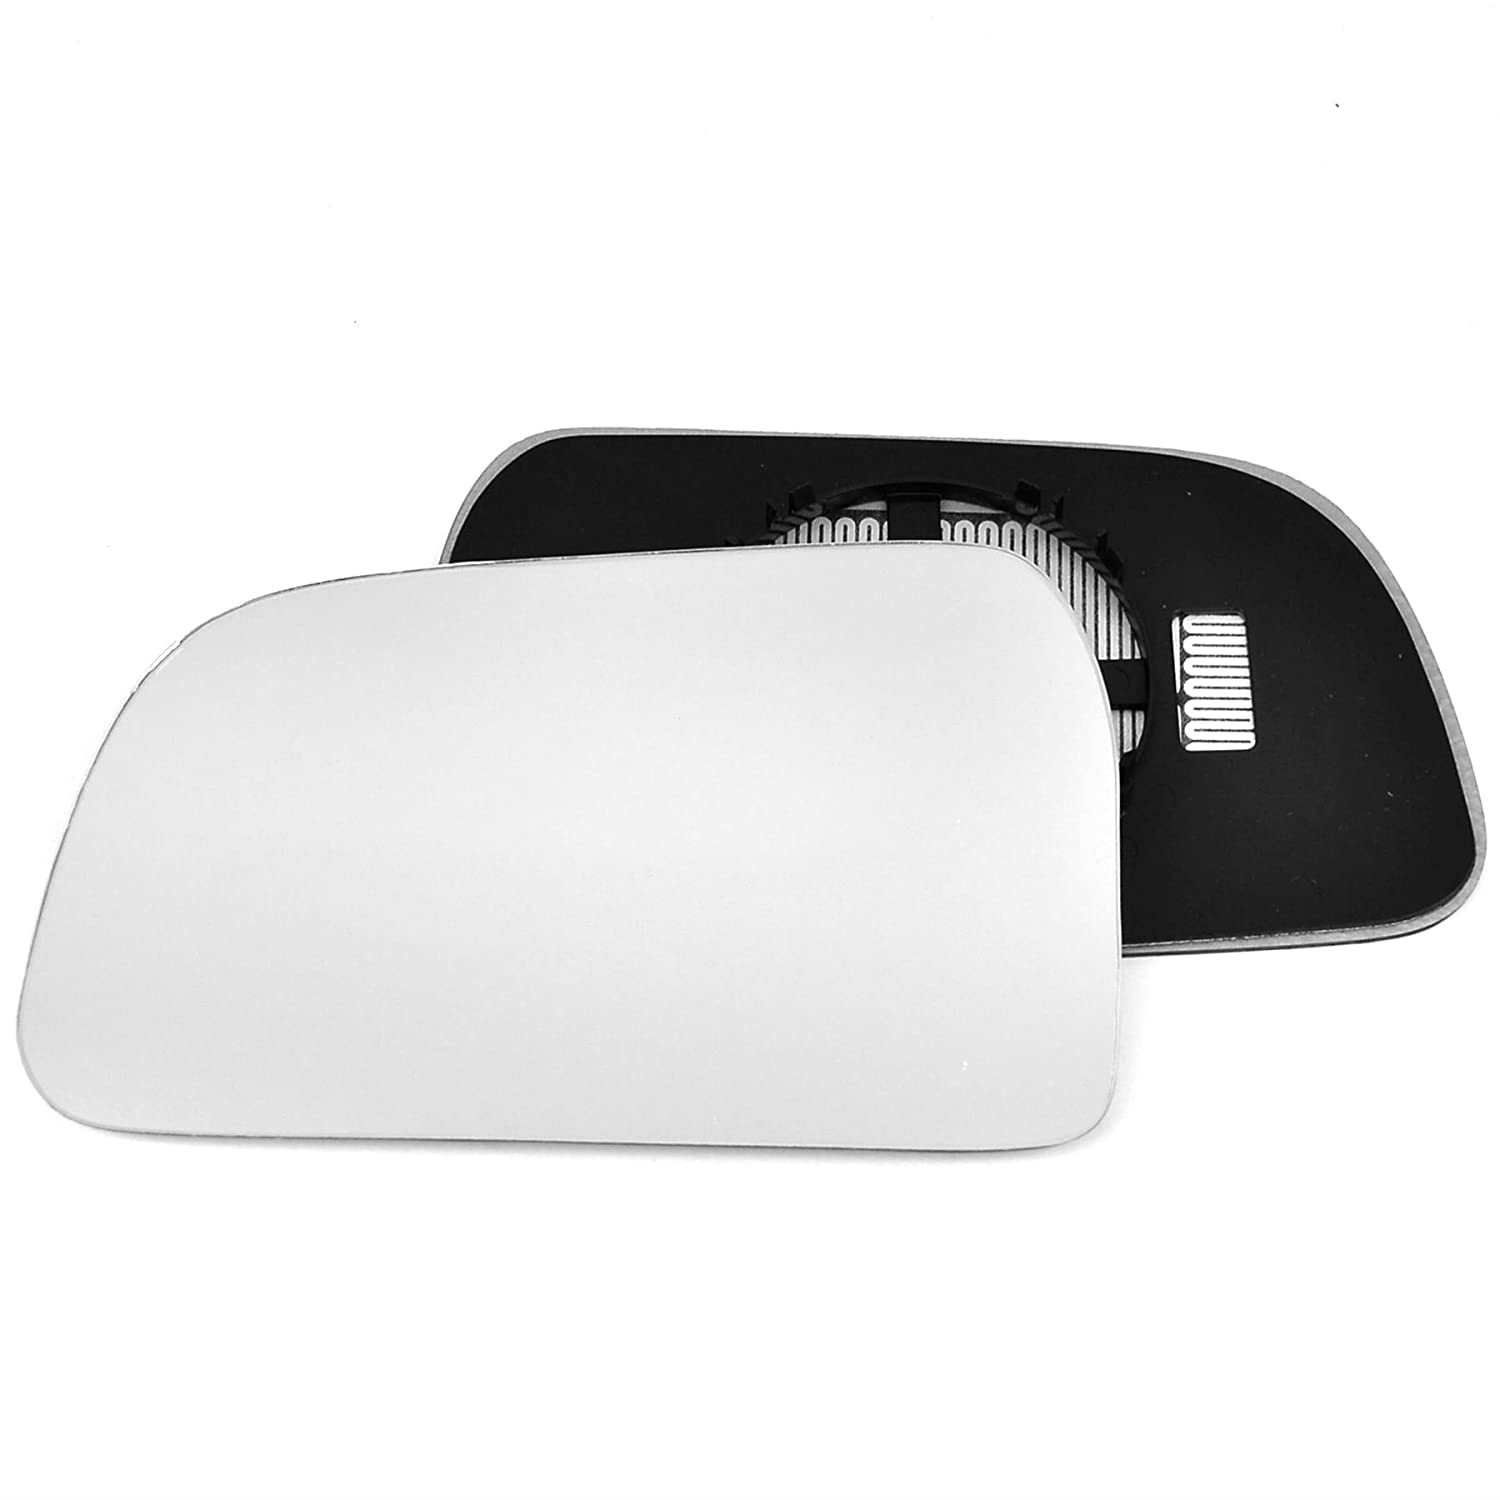 Passenger left hand side Heated wing door Silver mirror glass with backing plate #C-SHY//L-HITSN04 Clip On